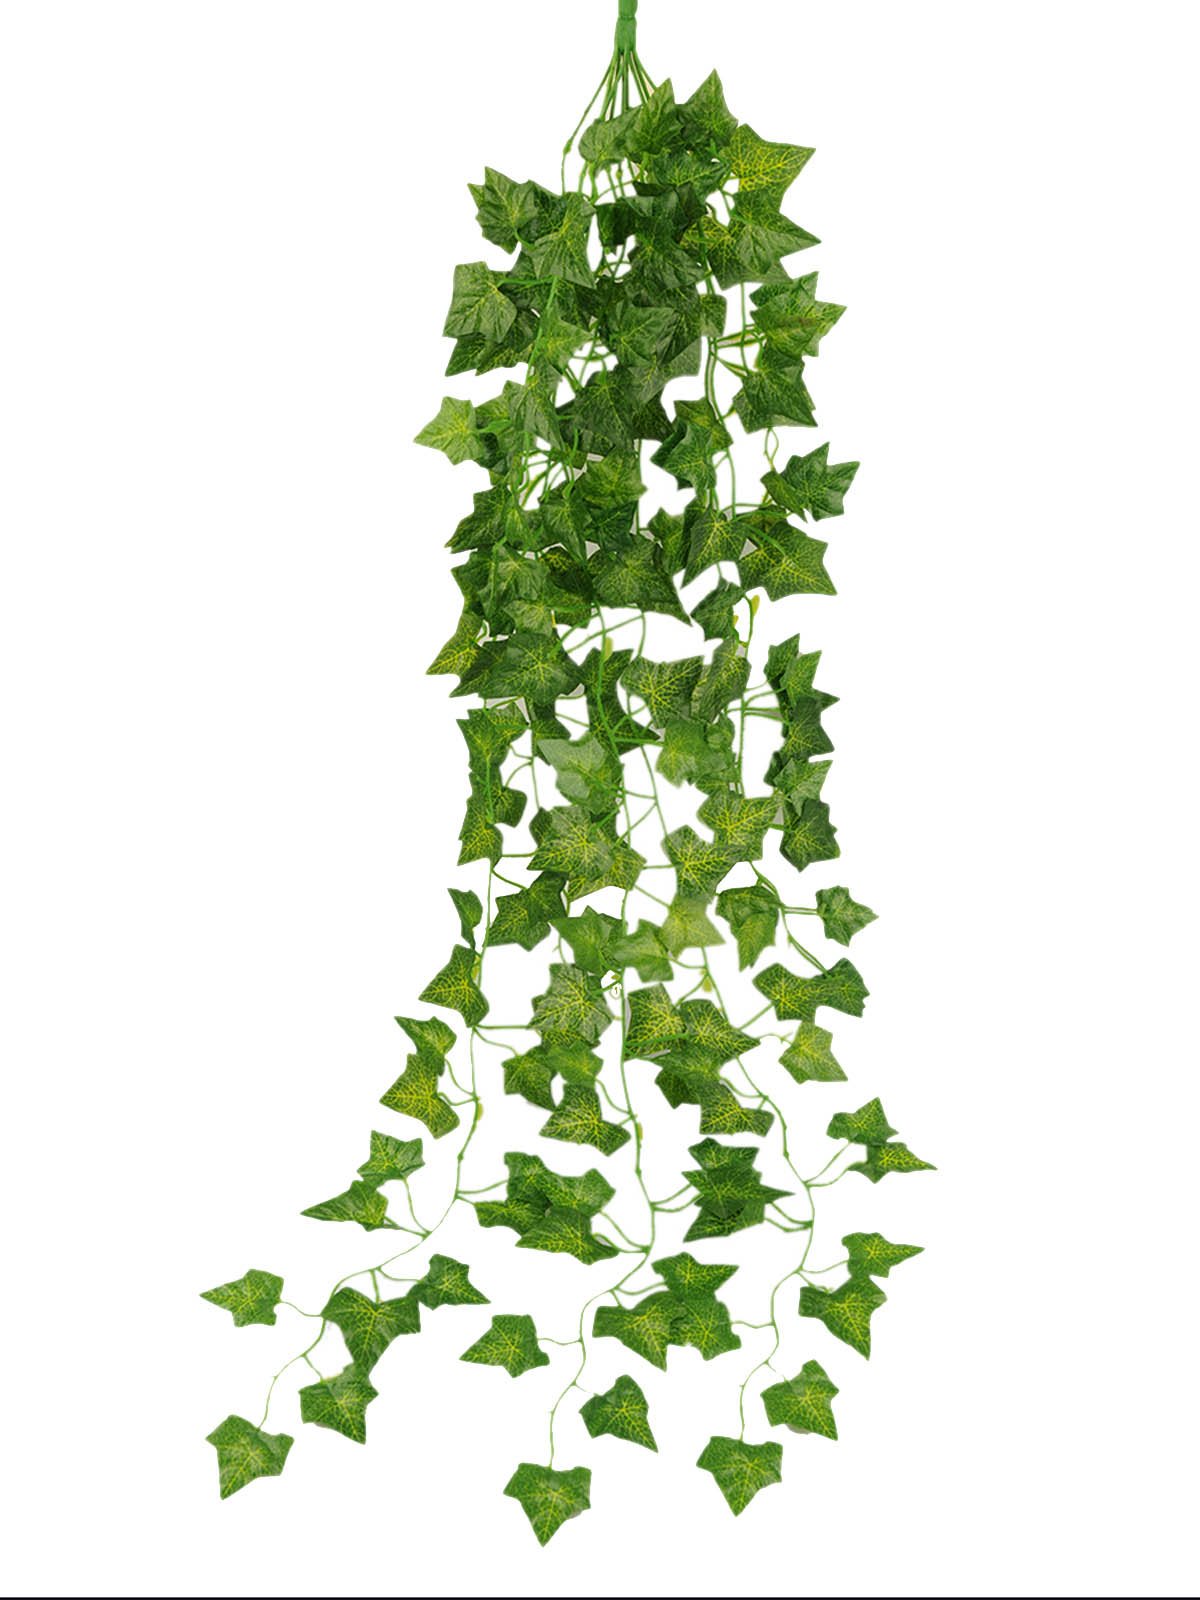 Artificial Garden Green Plant Hanging Vine Leaves Garland Home Wall Decor EBay